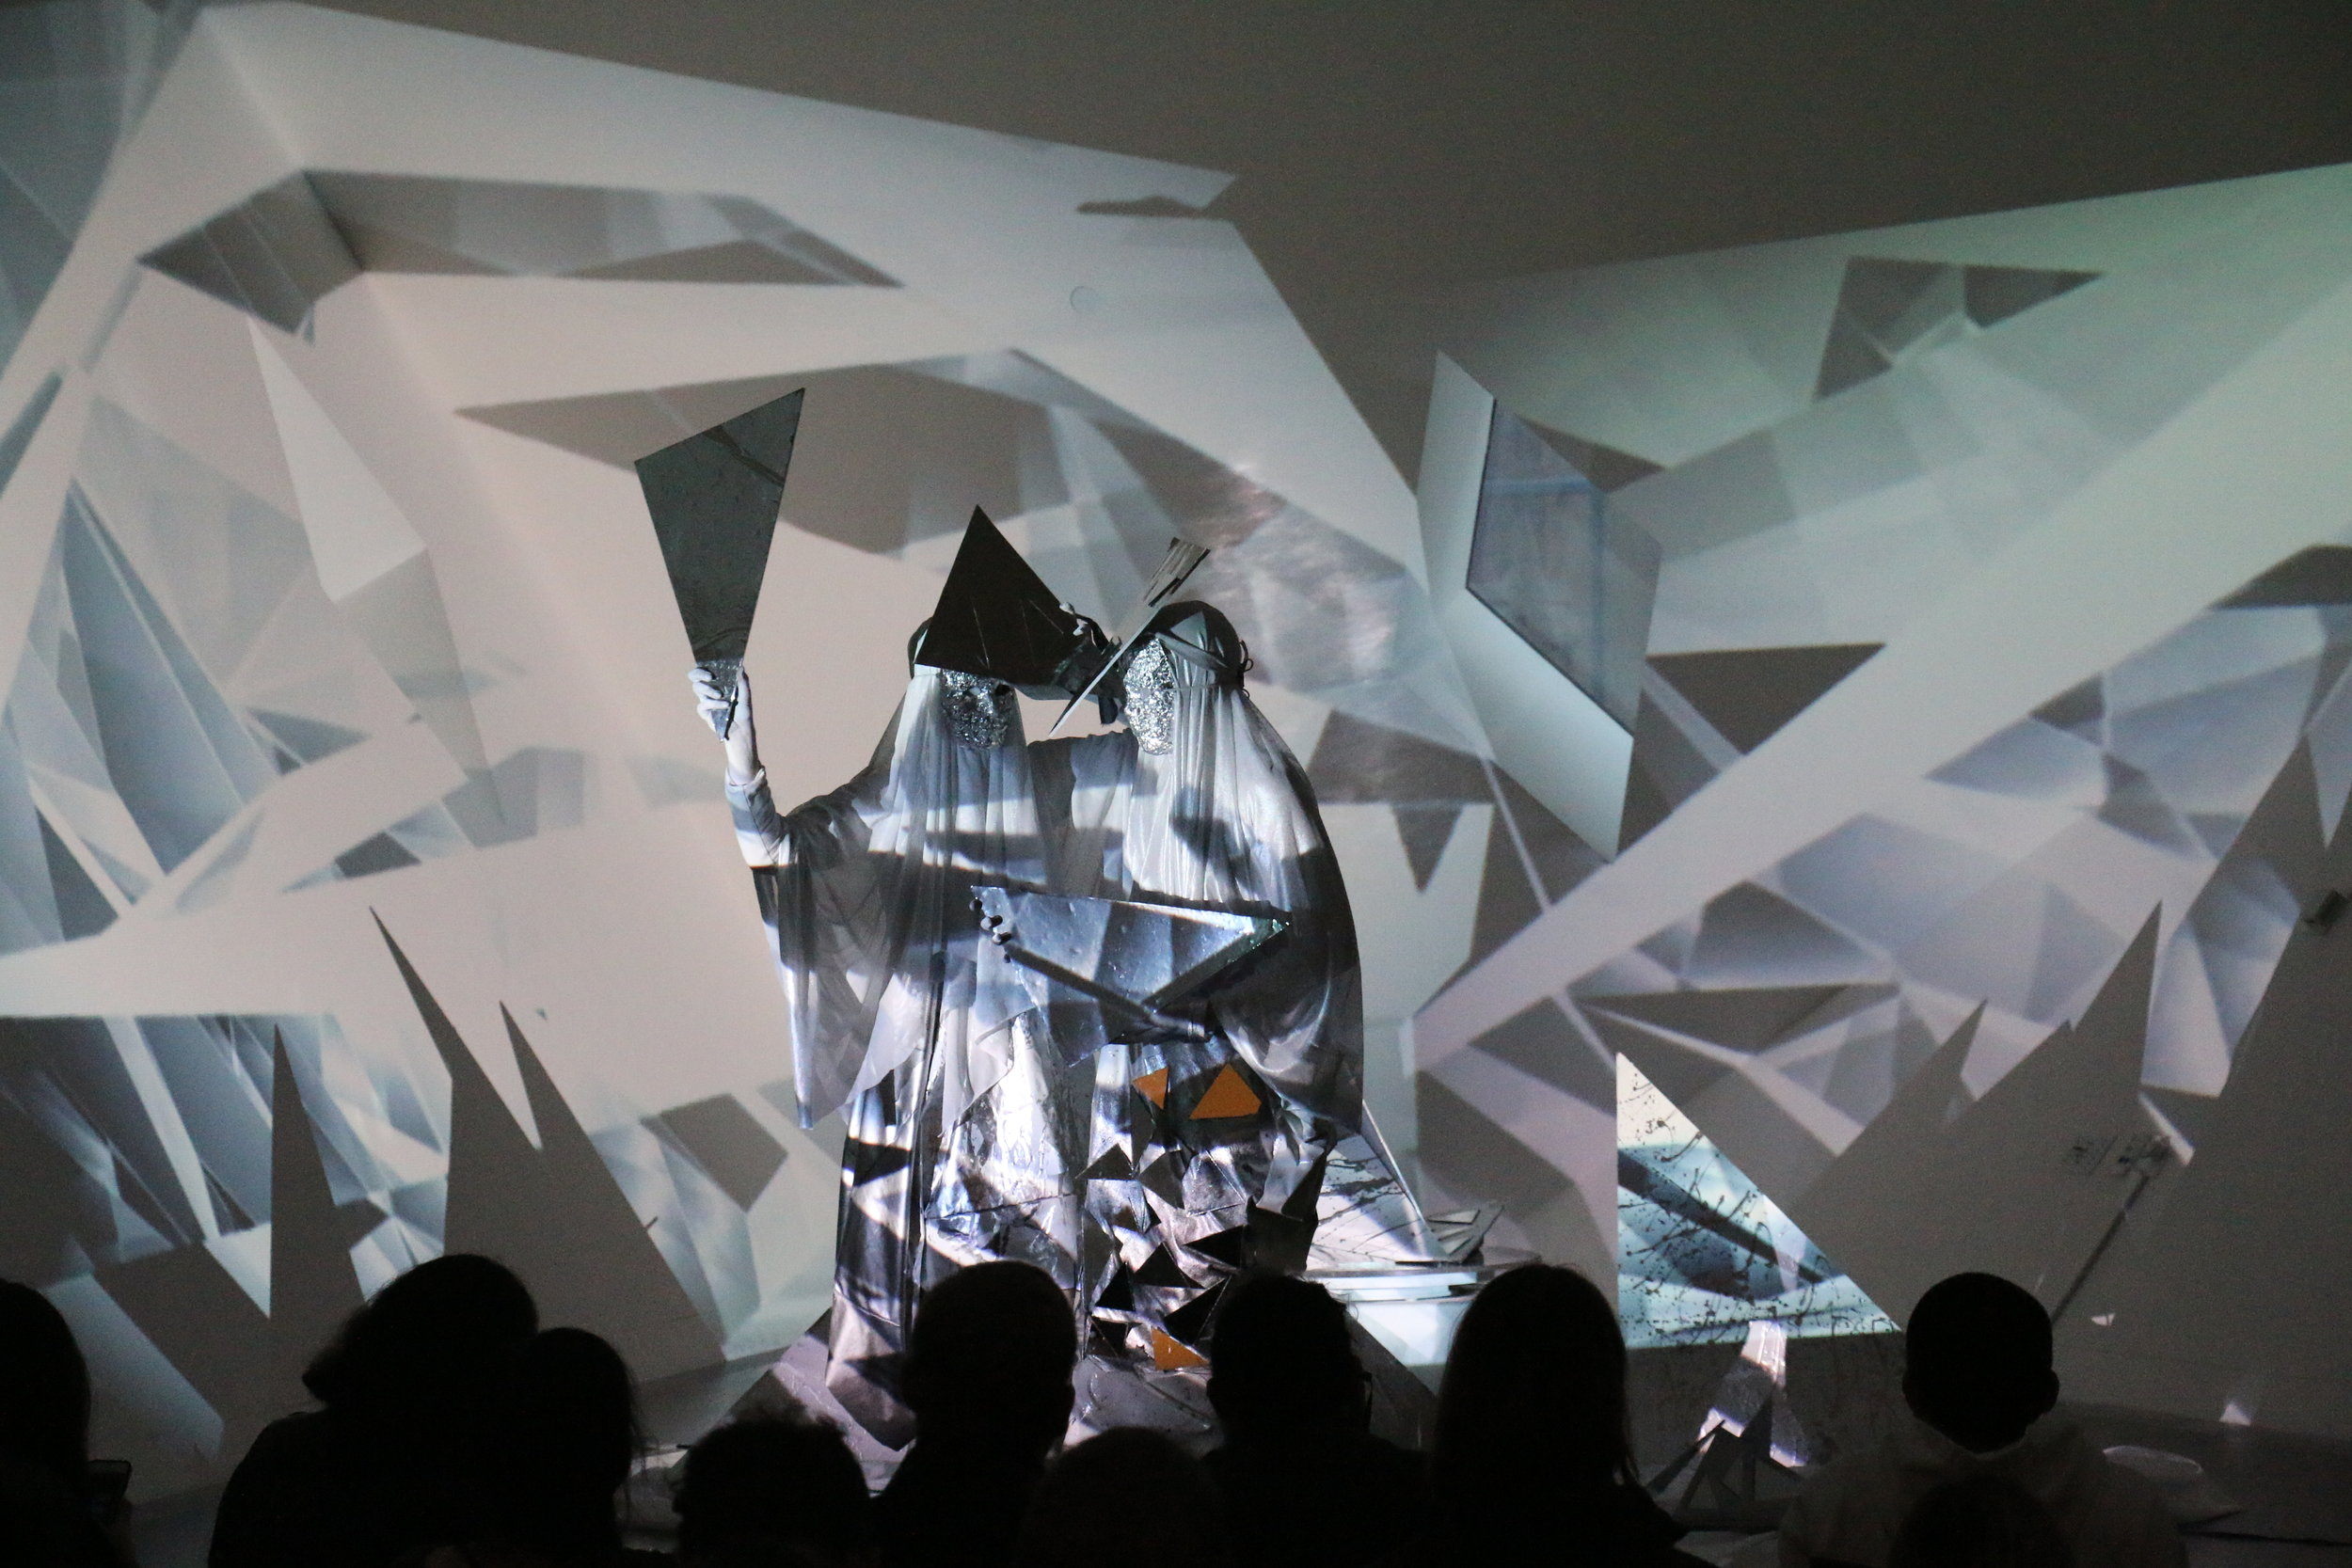 Curation of Material Notation including site-specific installation, video and performance at the  Contemporary Jewish Museum in the Yud Gallery  during the Soundwave Biennial.  Pictured: Suzy Poling with Natalee Decker